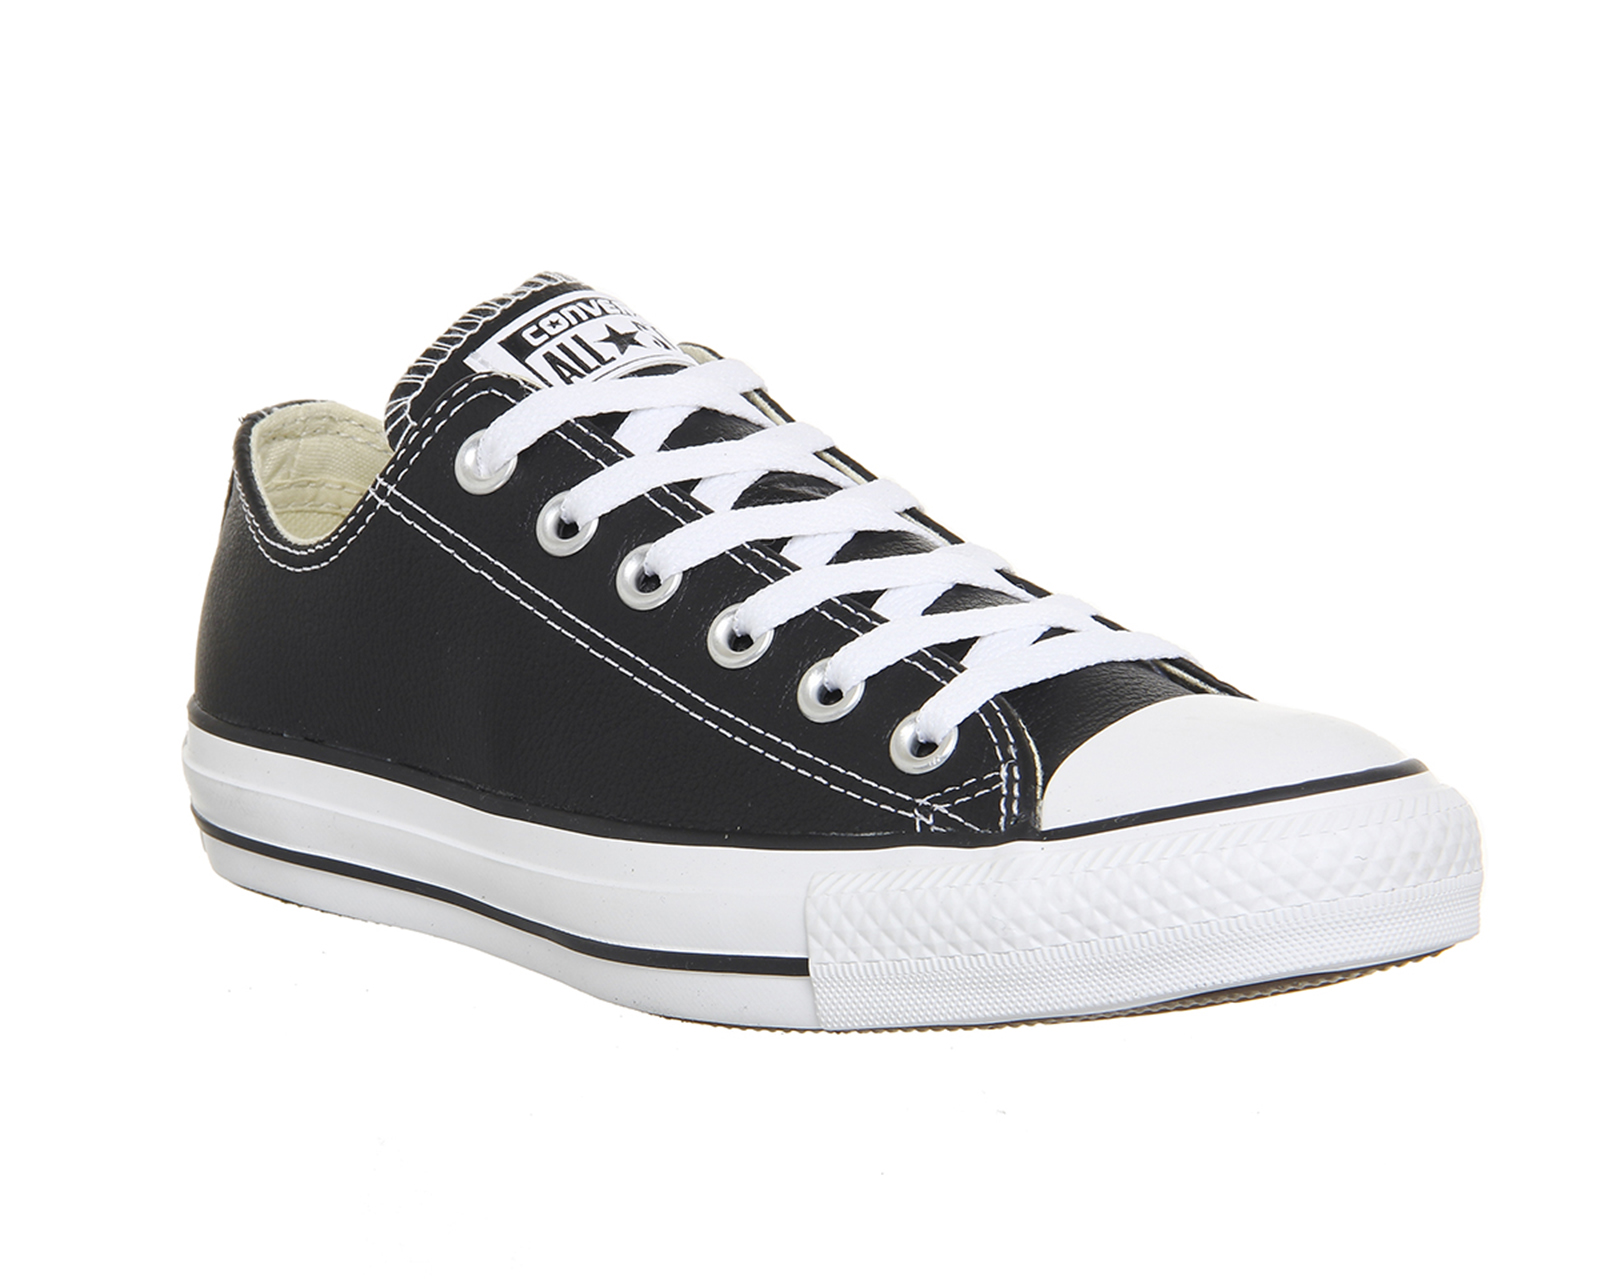 c3f8a1480fac Sentinel Womens Converse All Star Low Leather Black White Leather Trainers  Shoes